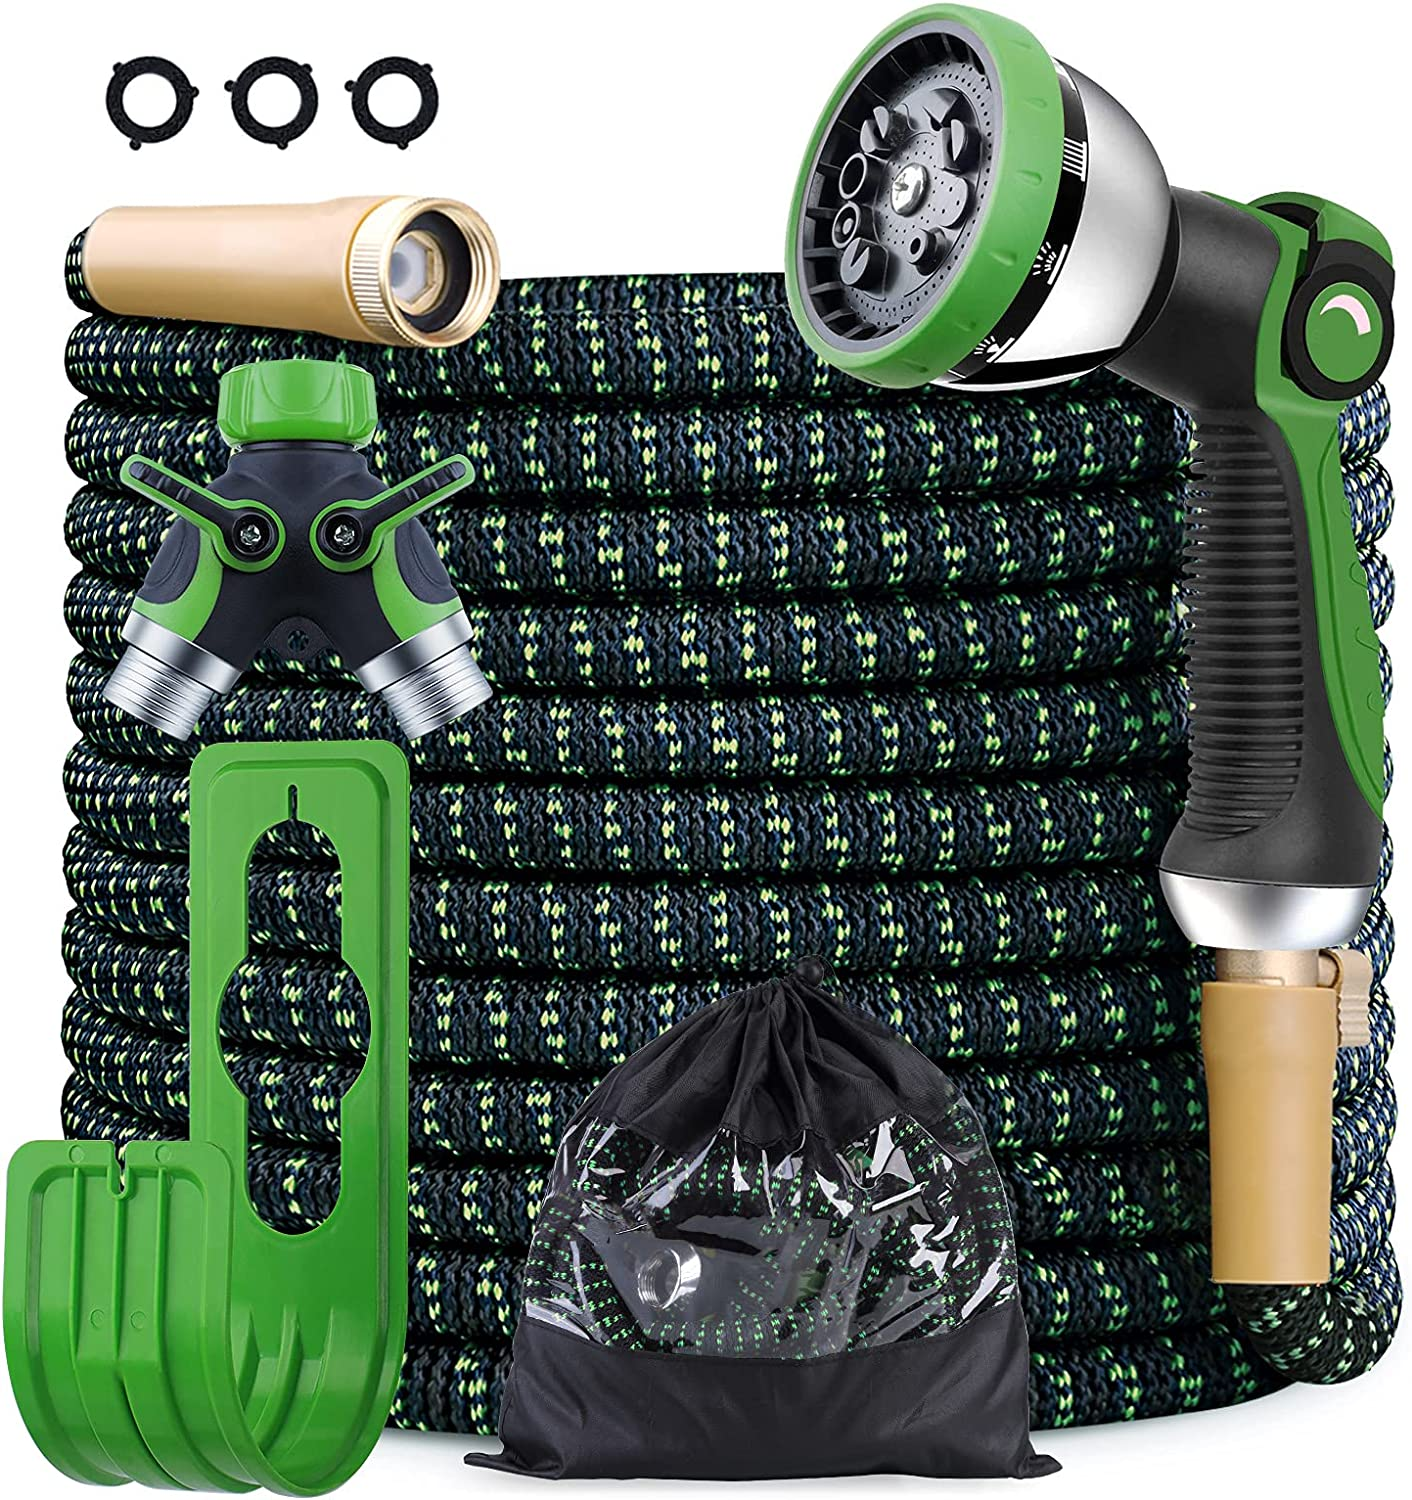 COFUNX Garden Hose,50ft Expandable Water Hose Kit with 2-Way Splitter &10 Function Zinc Spray Nozzle, Upgraded Anti-Leakage System, 3750D Fabric No-kink Flexibility Hose with 4-Layers Latex (50)